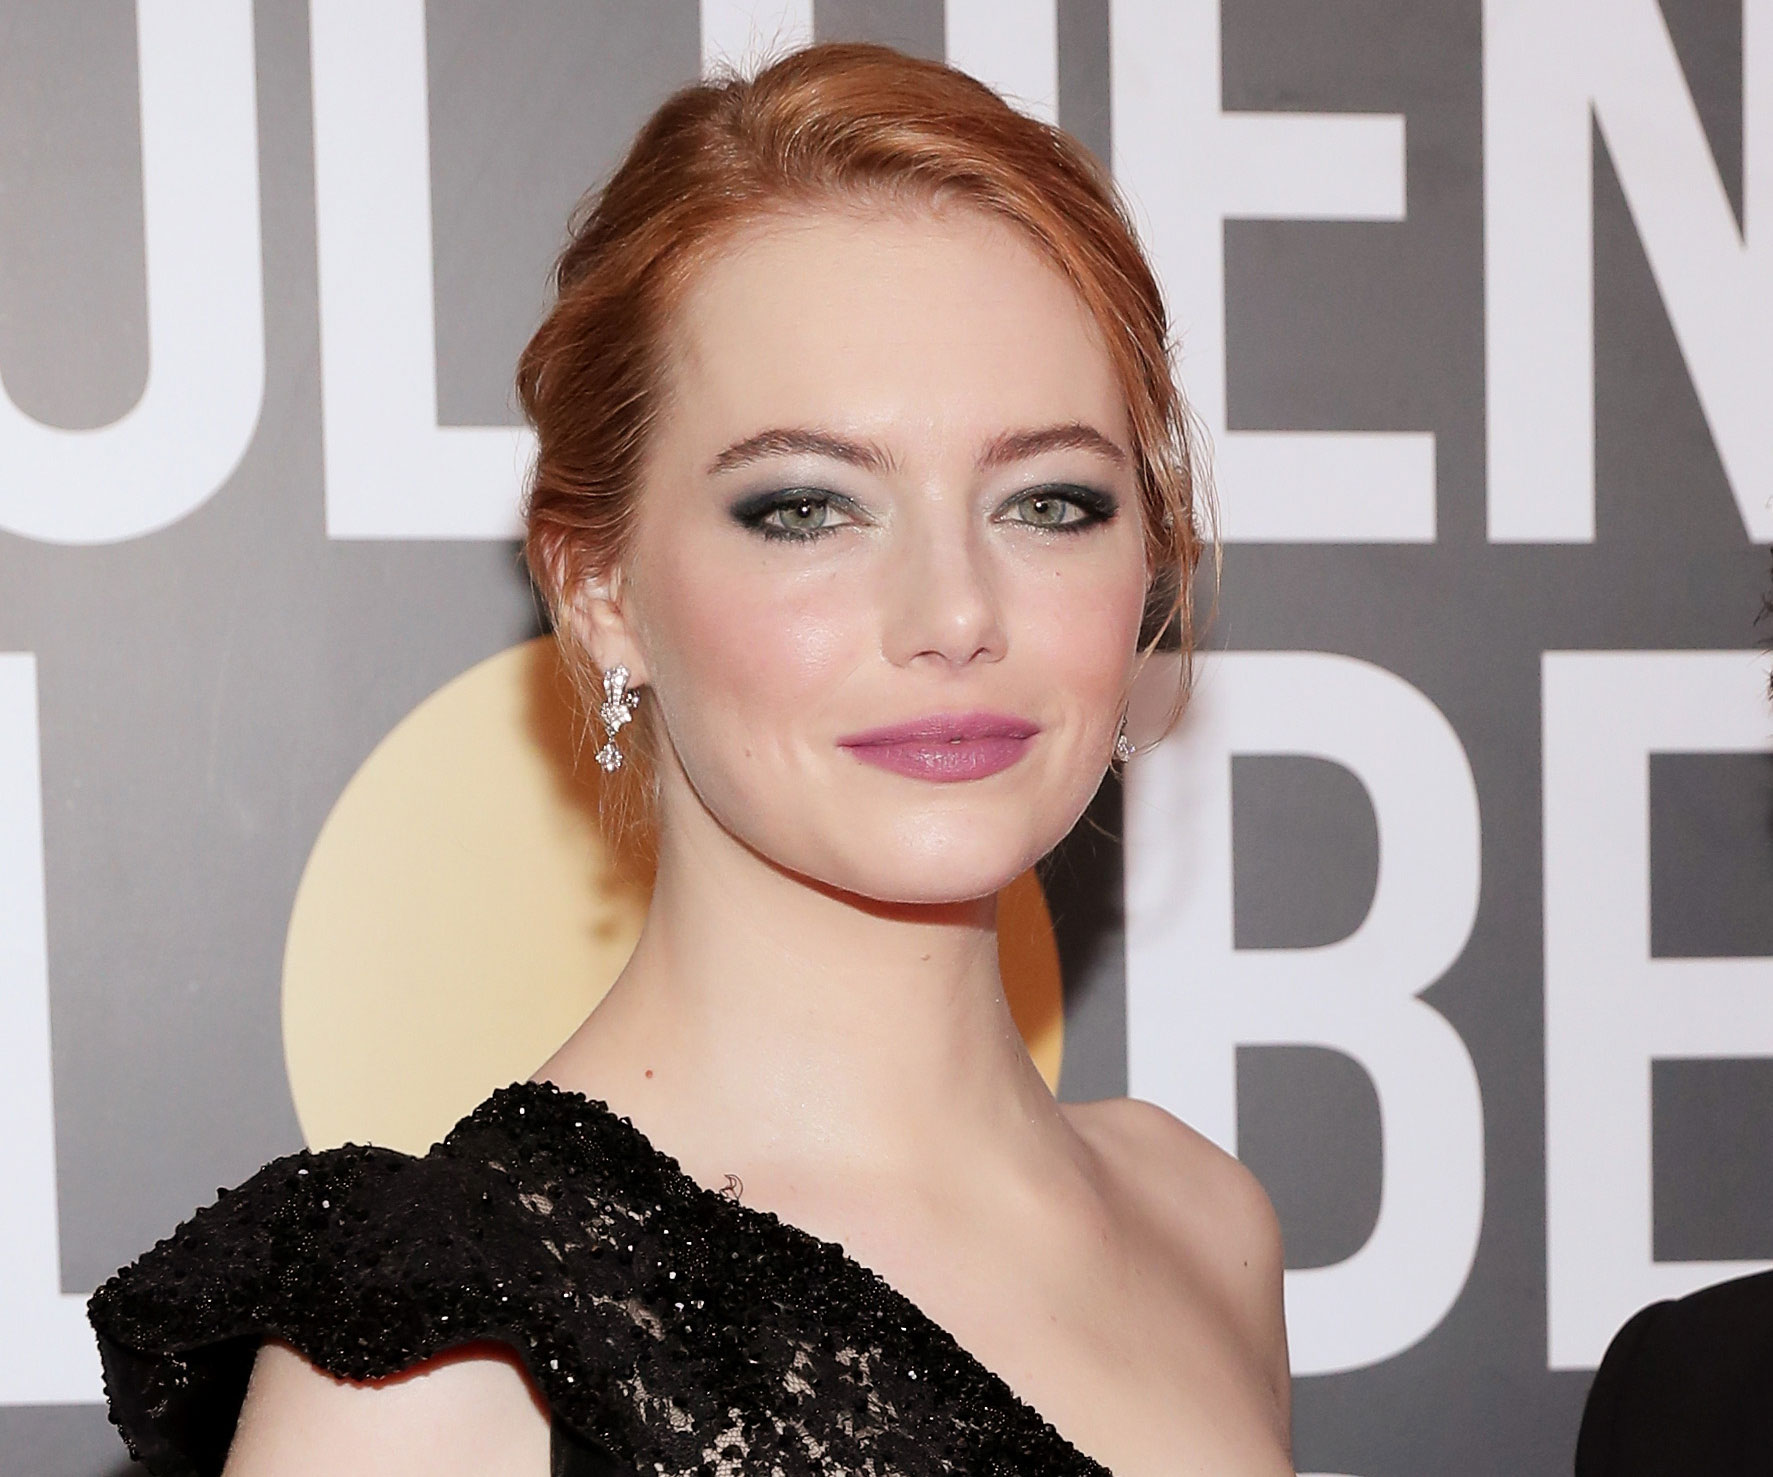 The hidden meaning behind Emma Stone's GG makeup is so important